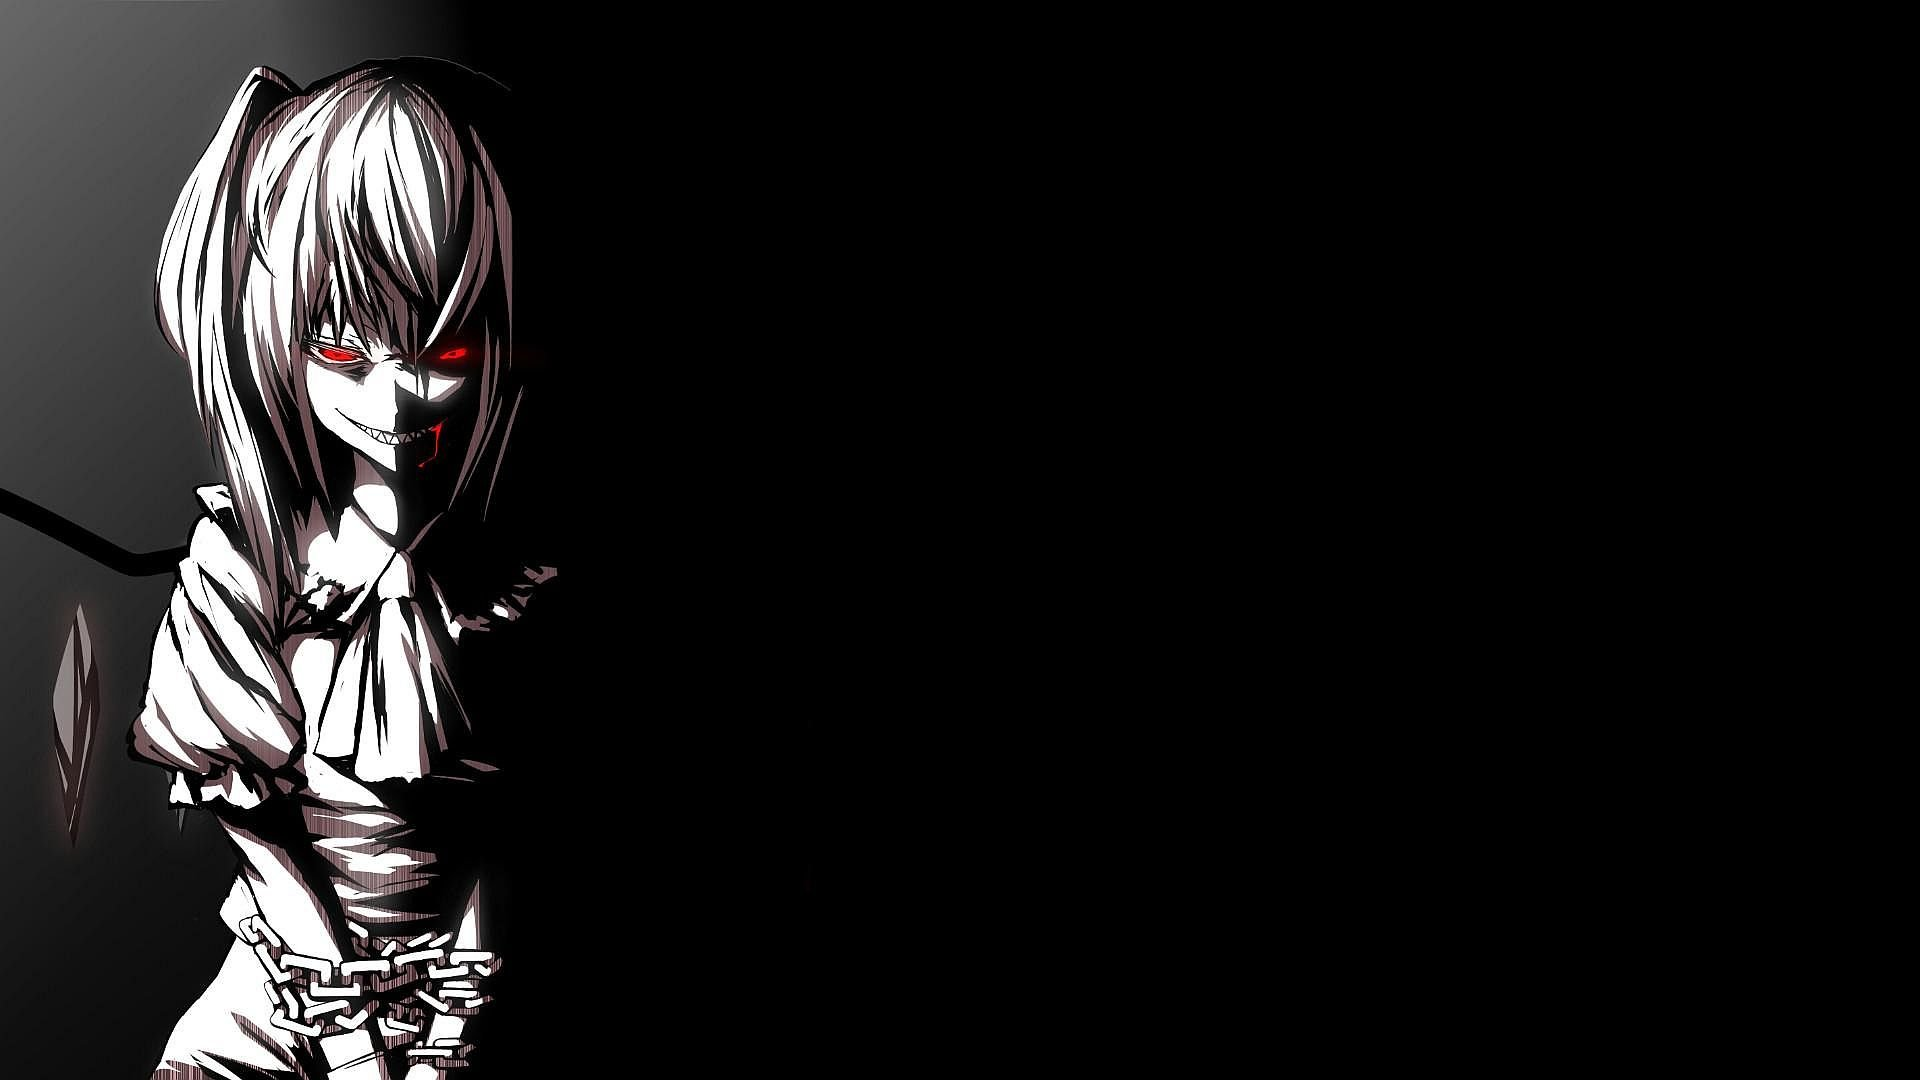 Dark Anime Girl Wallpaper 9691 Hd Wallpapers in Anime   Imagescicom 1920x1080